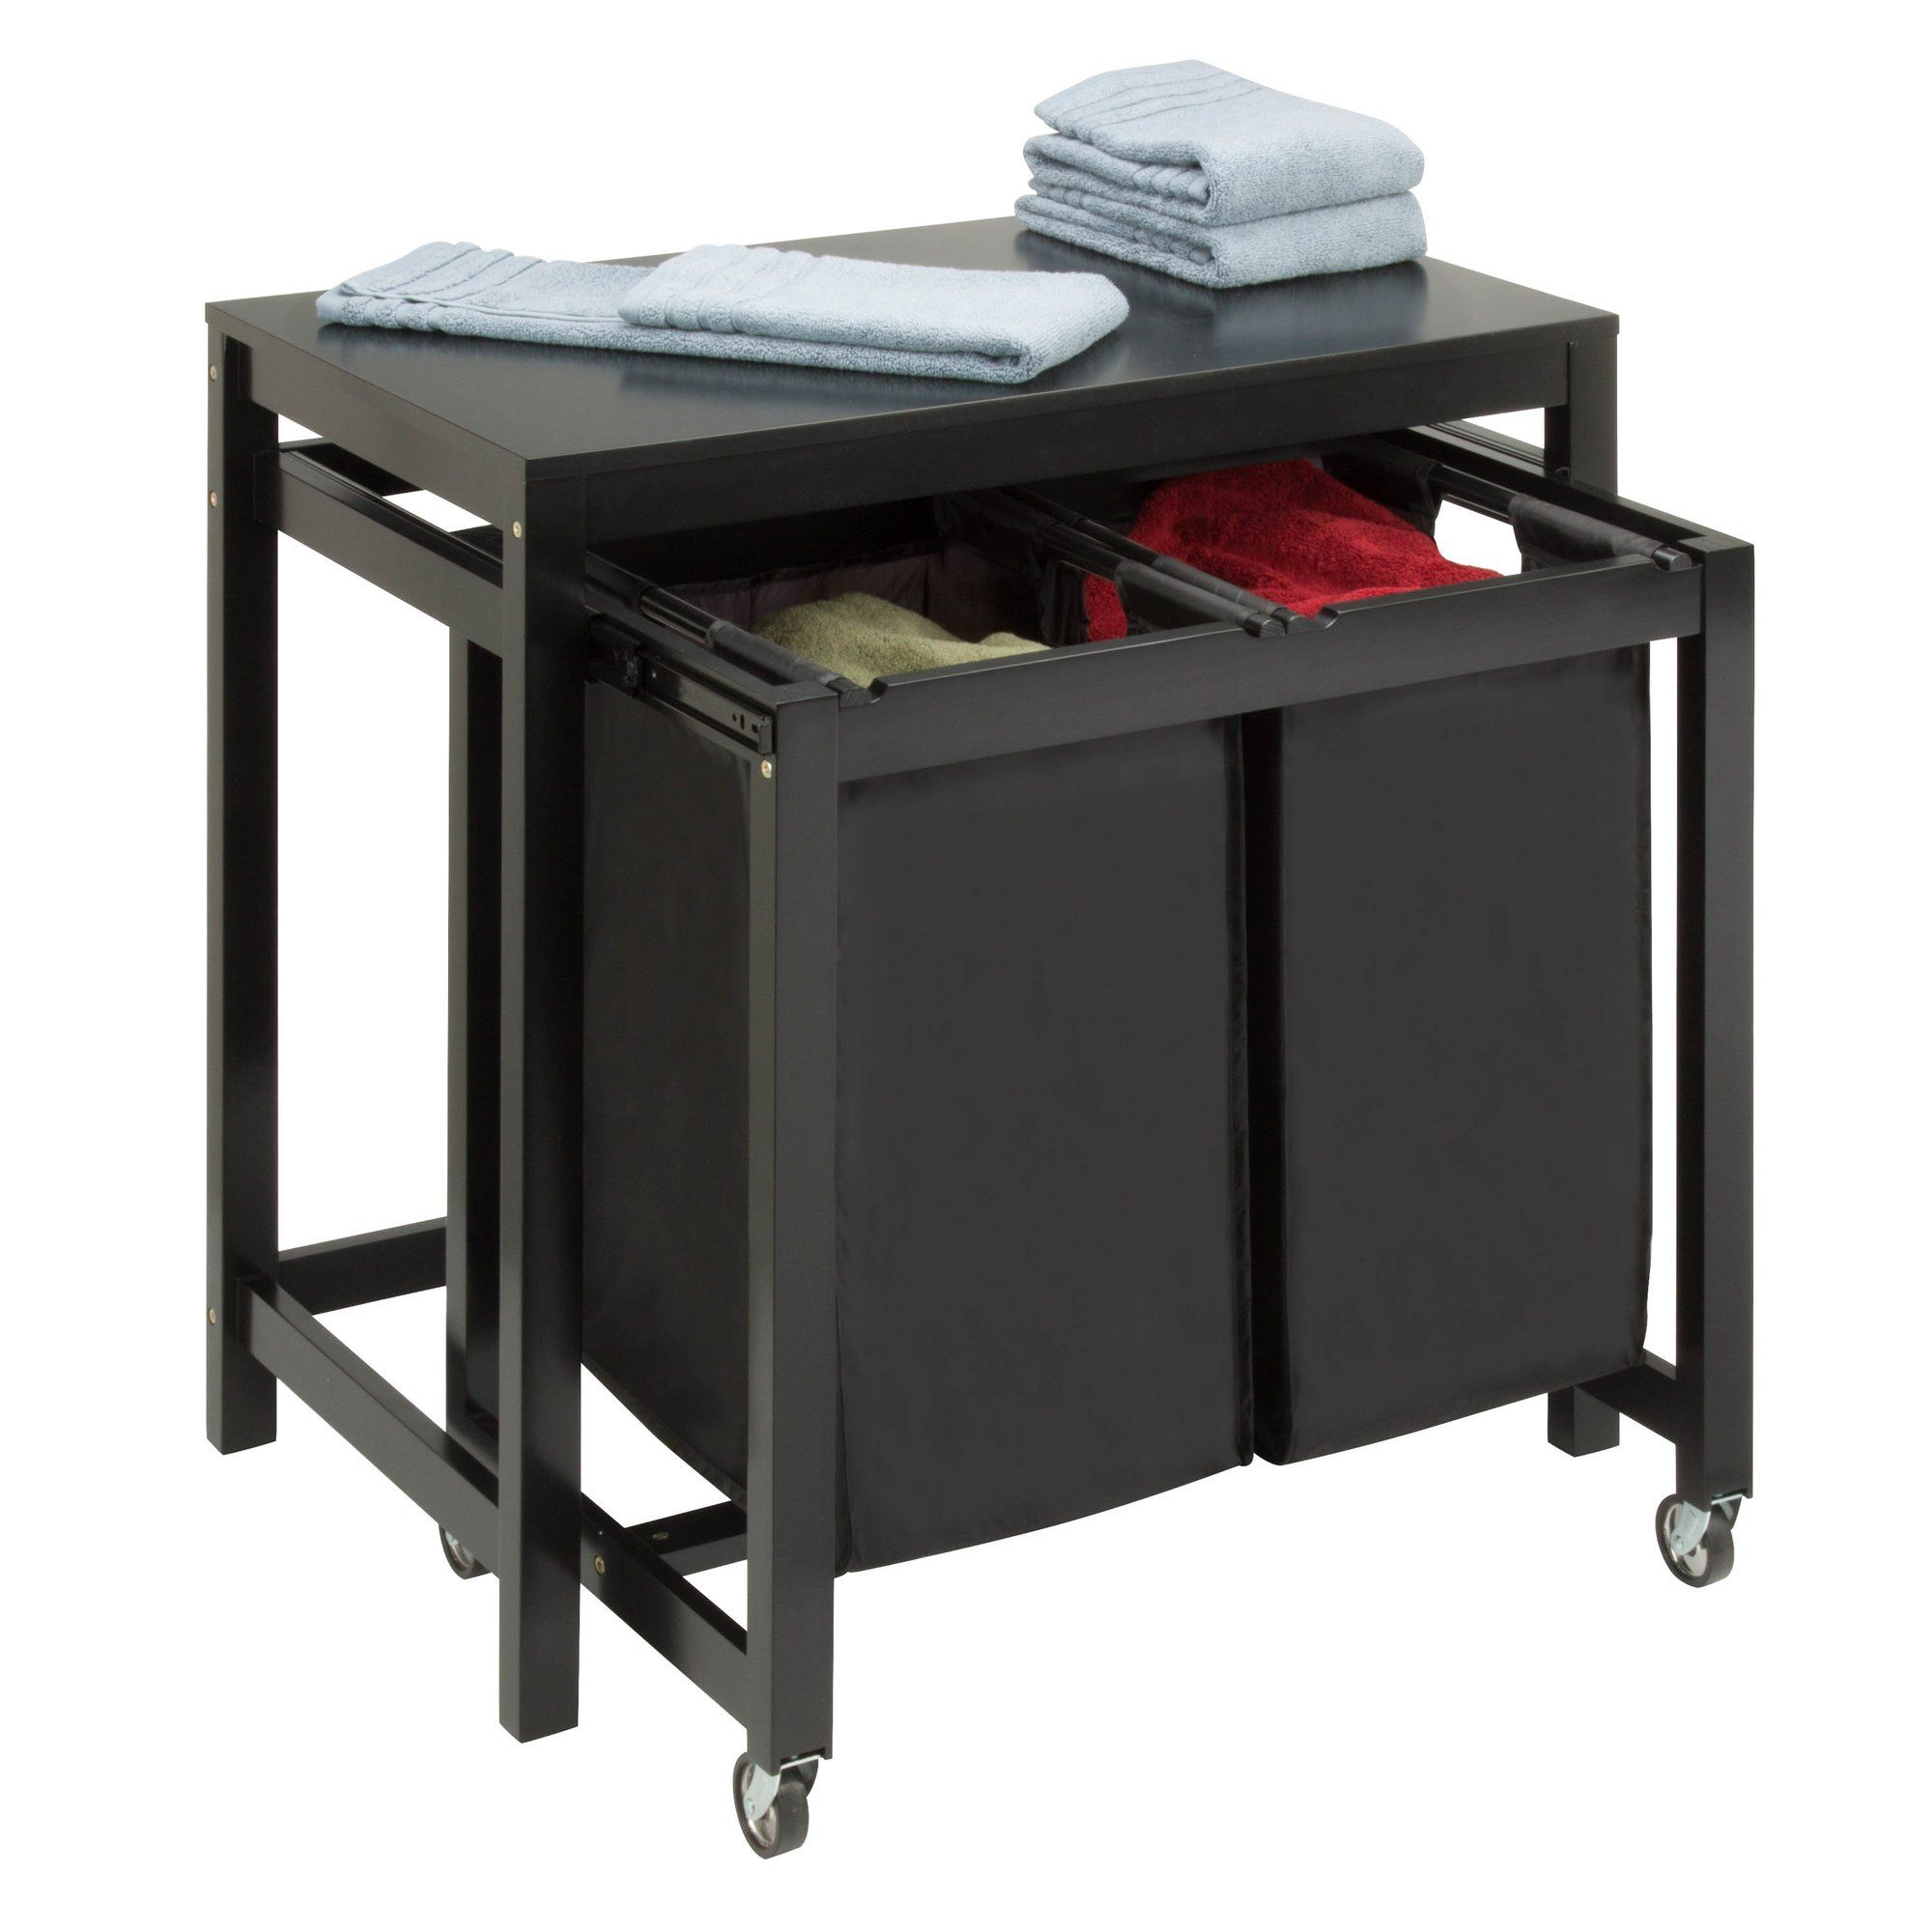 Double Folding Laundry Sorter Laundry Sorter Laundry Room